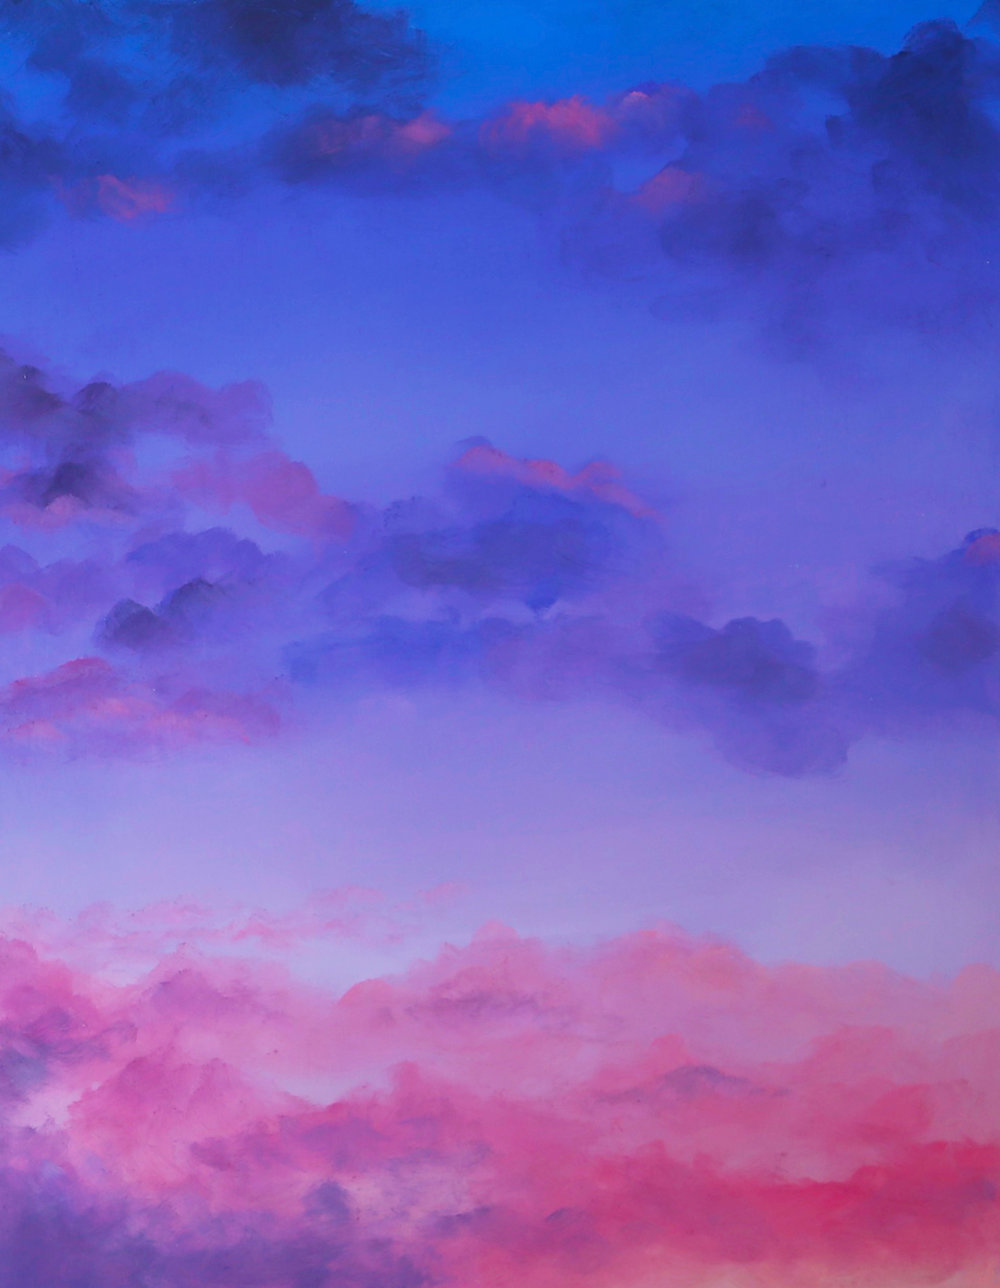 Amethyst Skies, 2017, Oil on wood panel